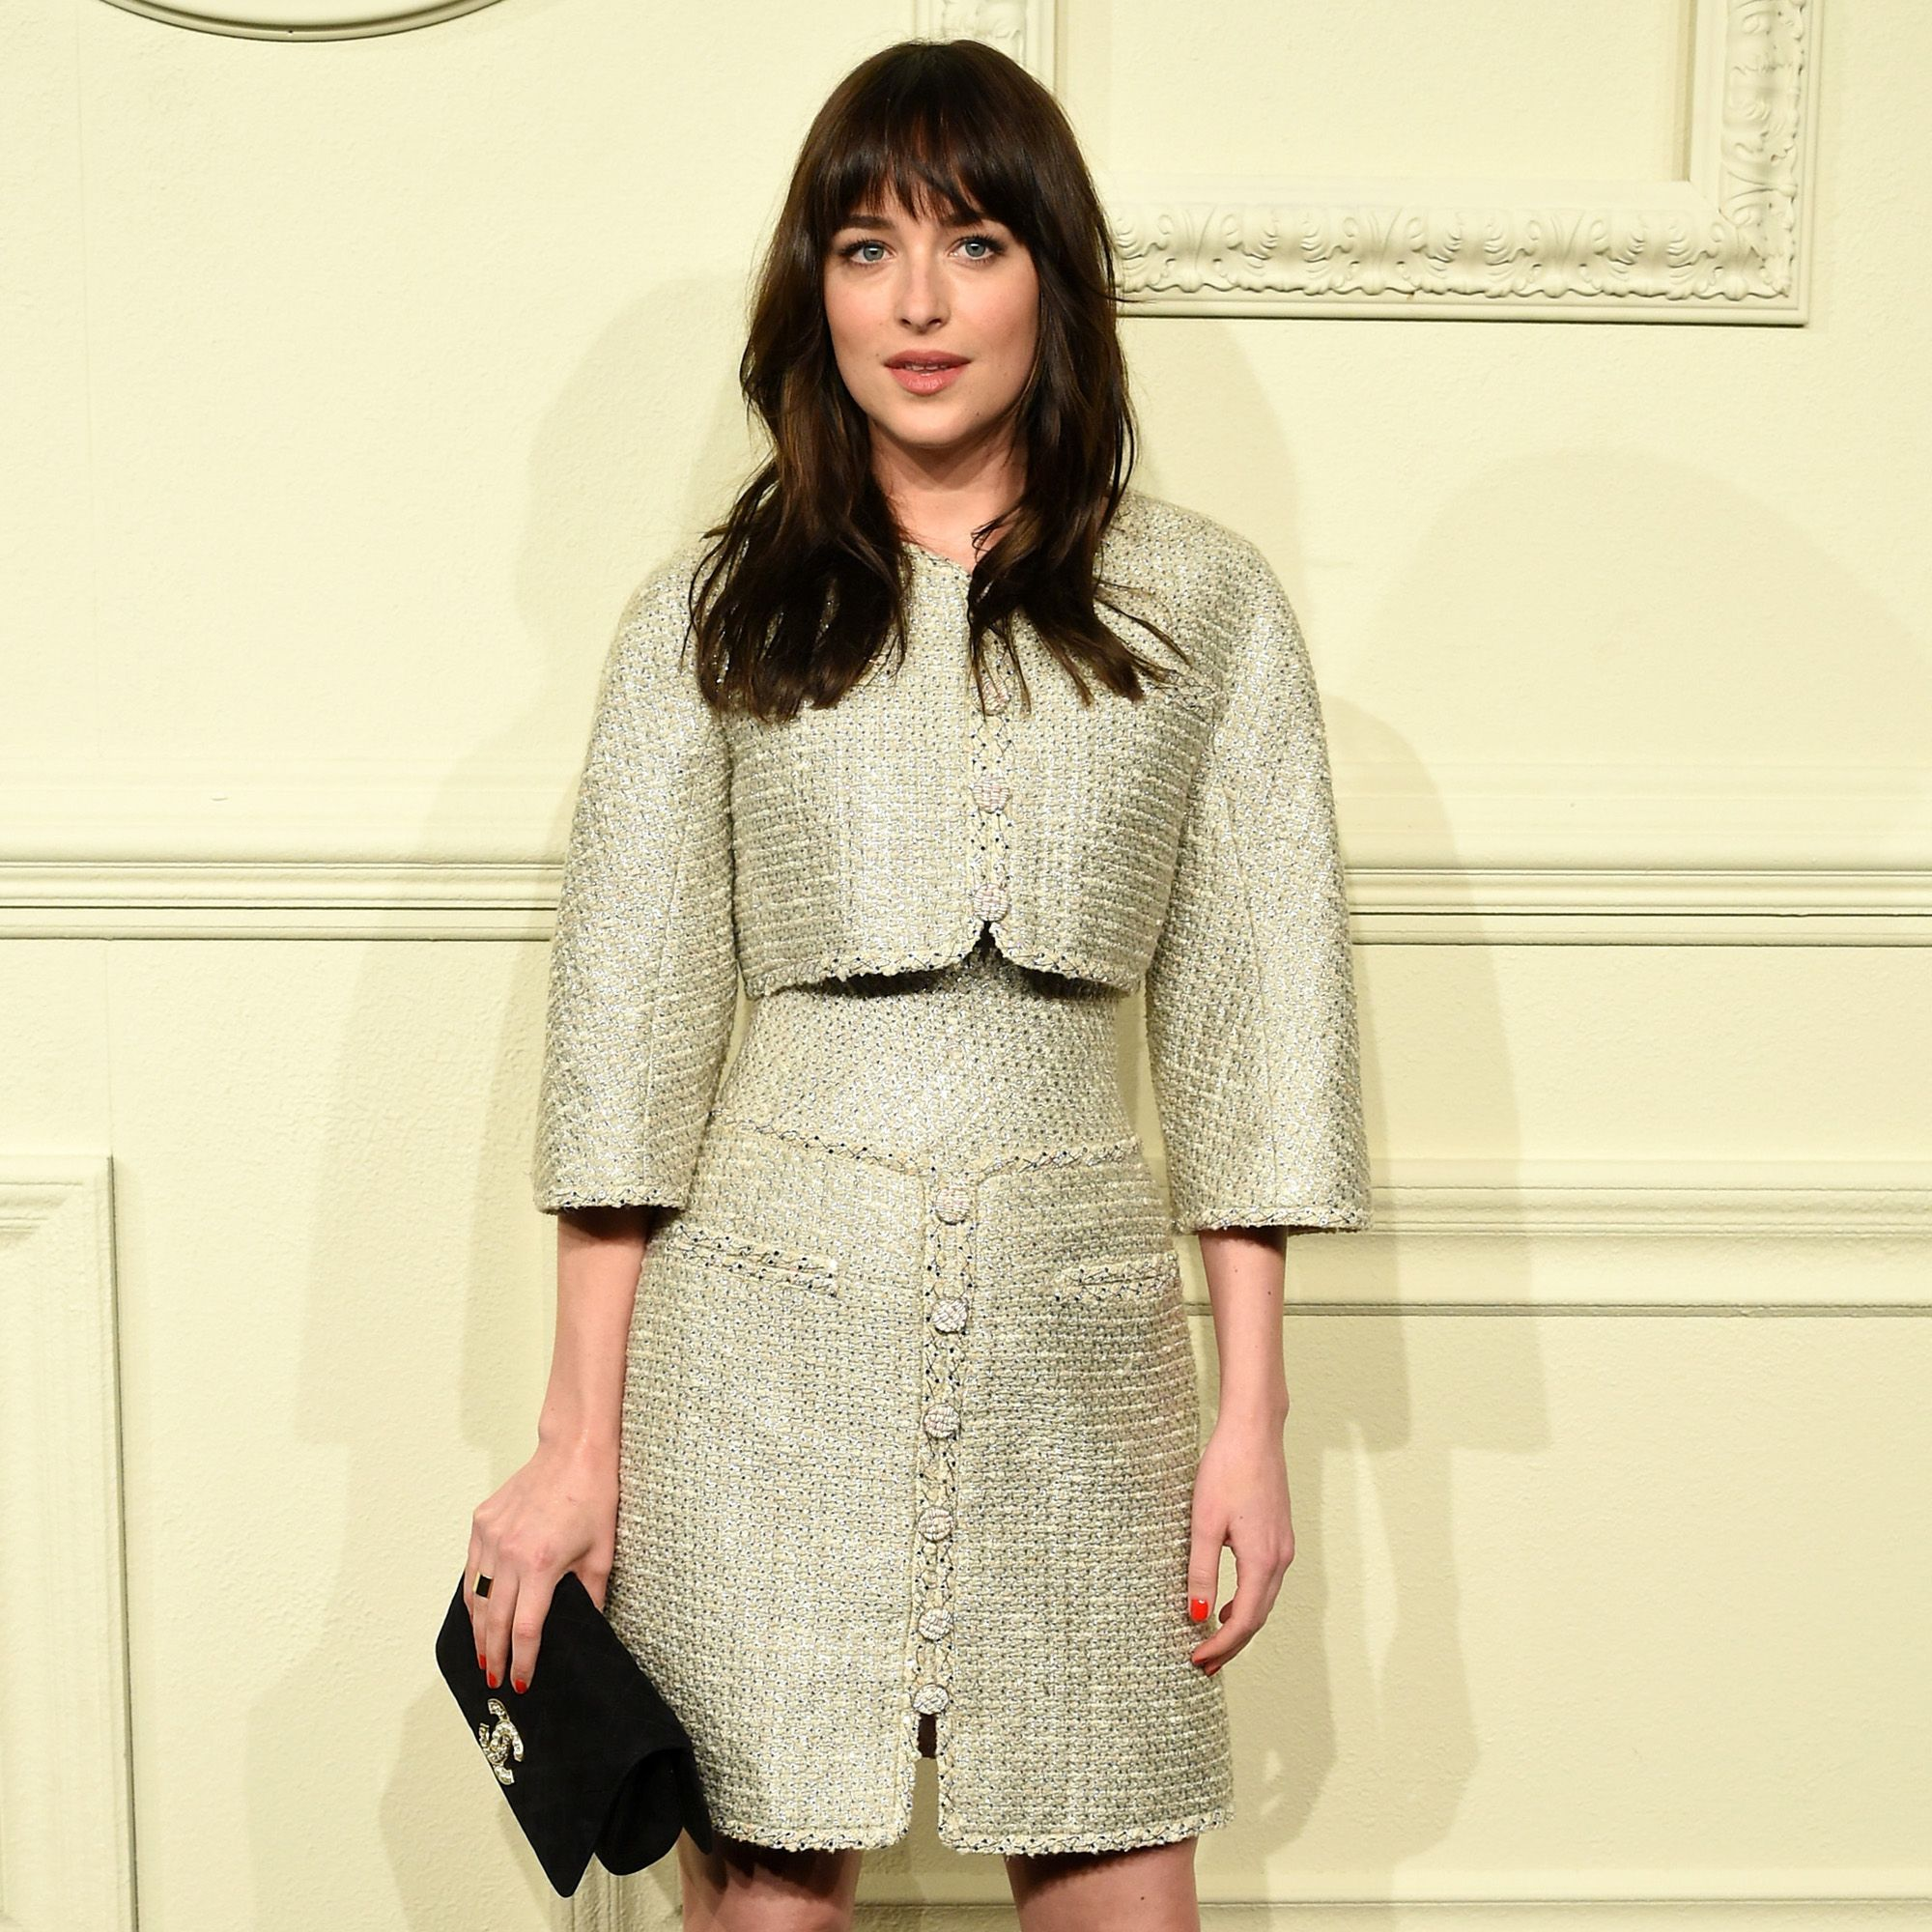 NEW YORK, NY - MARCH 31:  Actress Dakota Johnson attends the CHANEL Paris-Salzburg 2014/15 Metiers d'Art Collection in New York City at the Park Avenue Armory on March 31, 2015 in New York City.  (Photo by Andrew H. Walker/WireImage)